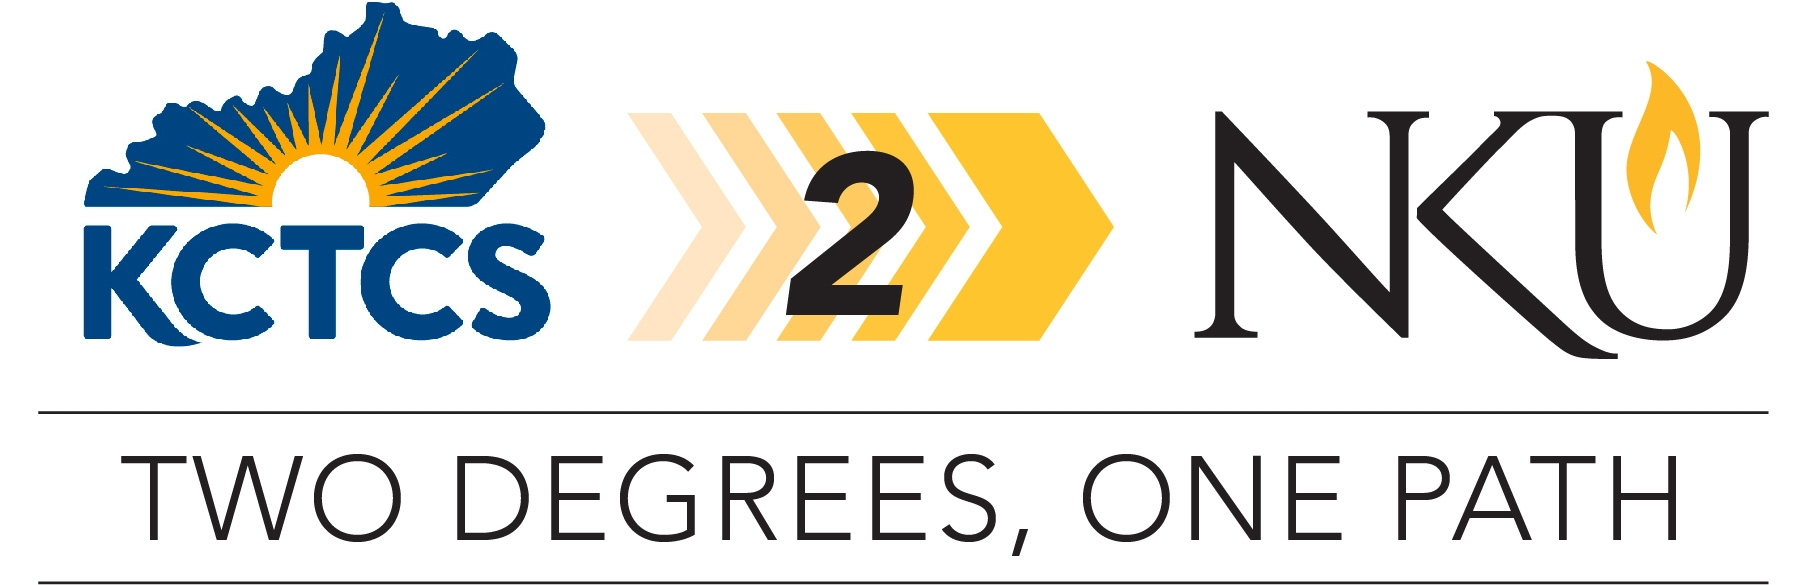 KCTCS to NKU - two degrees, one path